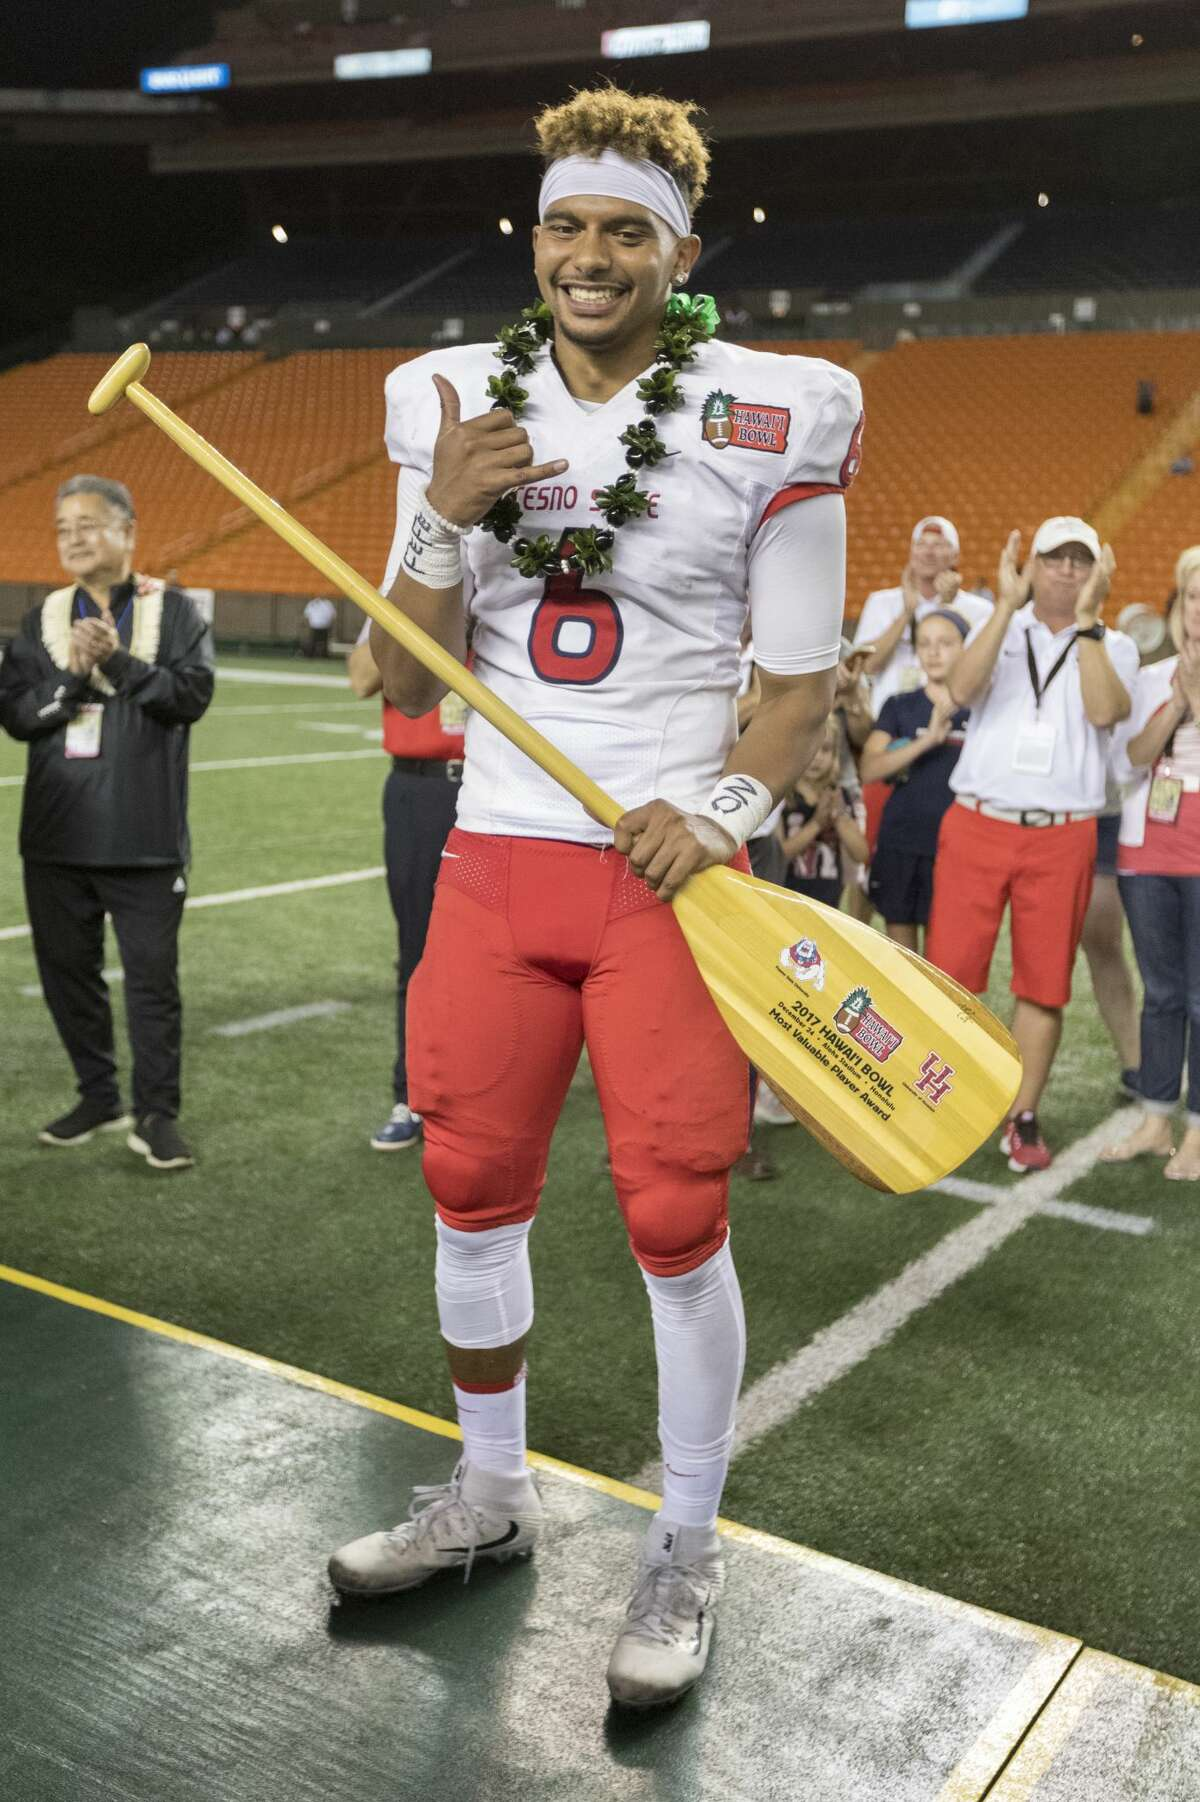 Fresno State quarterback Marcus McMaryion (6) was named the MVP for his team after the Hawaii Bowl NCAA college football game, Sunday, Dec. 24, 2017, in Honolulu. Fresno State beat Houston 33-27. (AP Photo/Eugene Tanner)